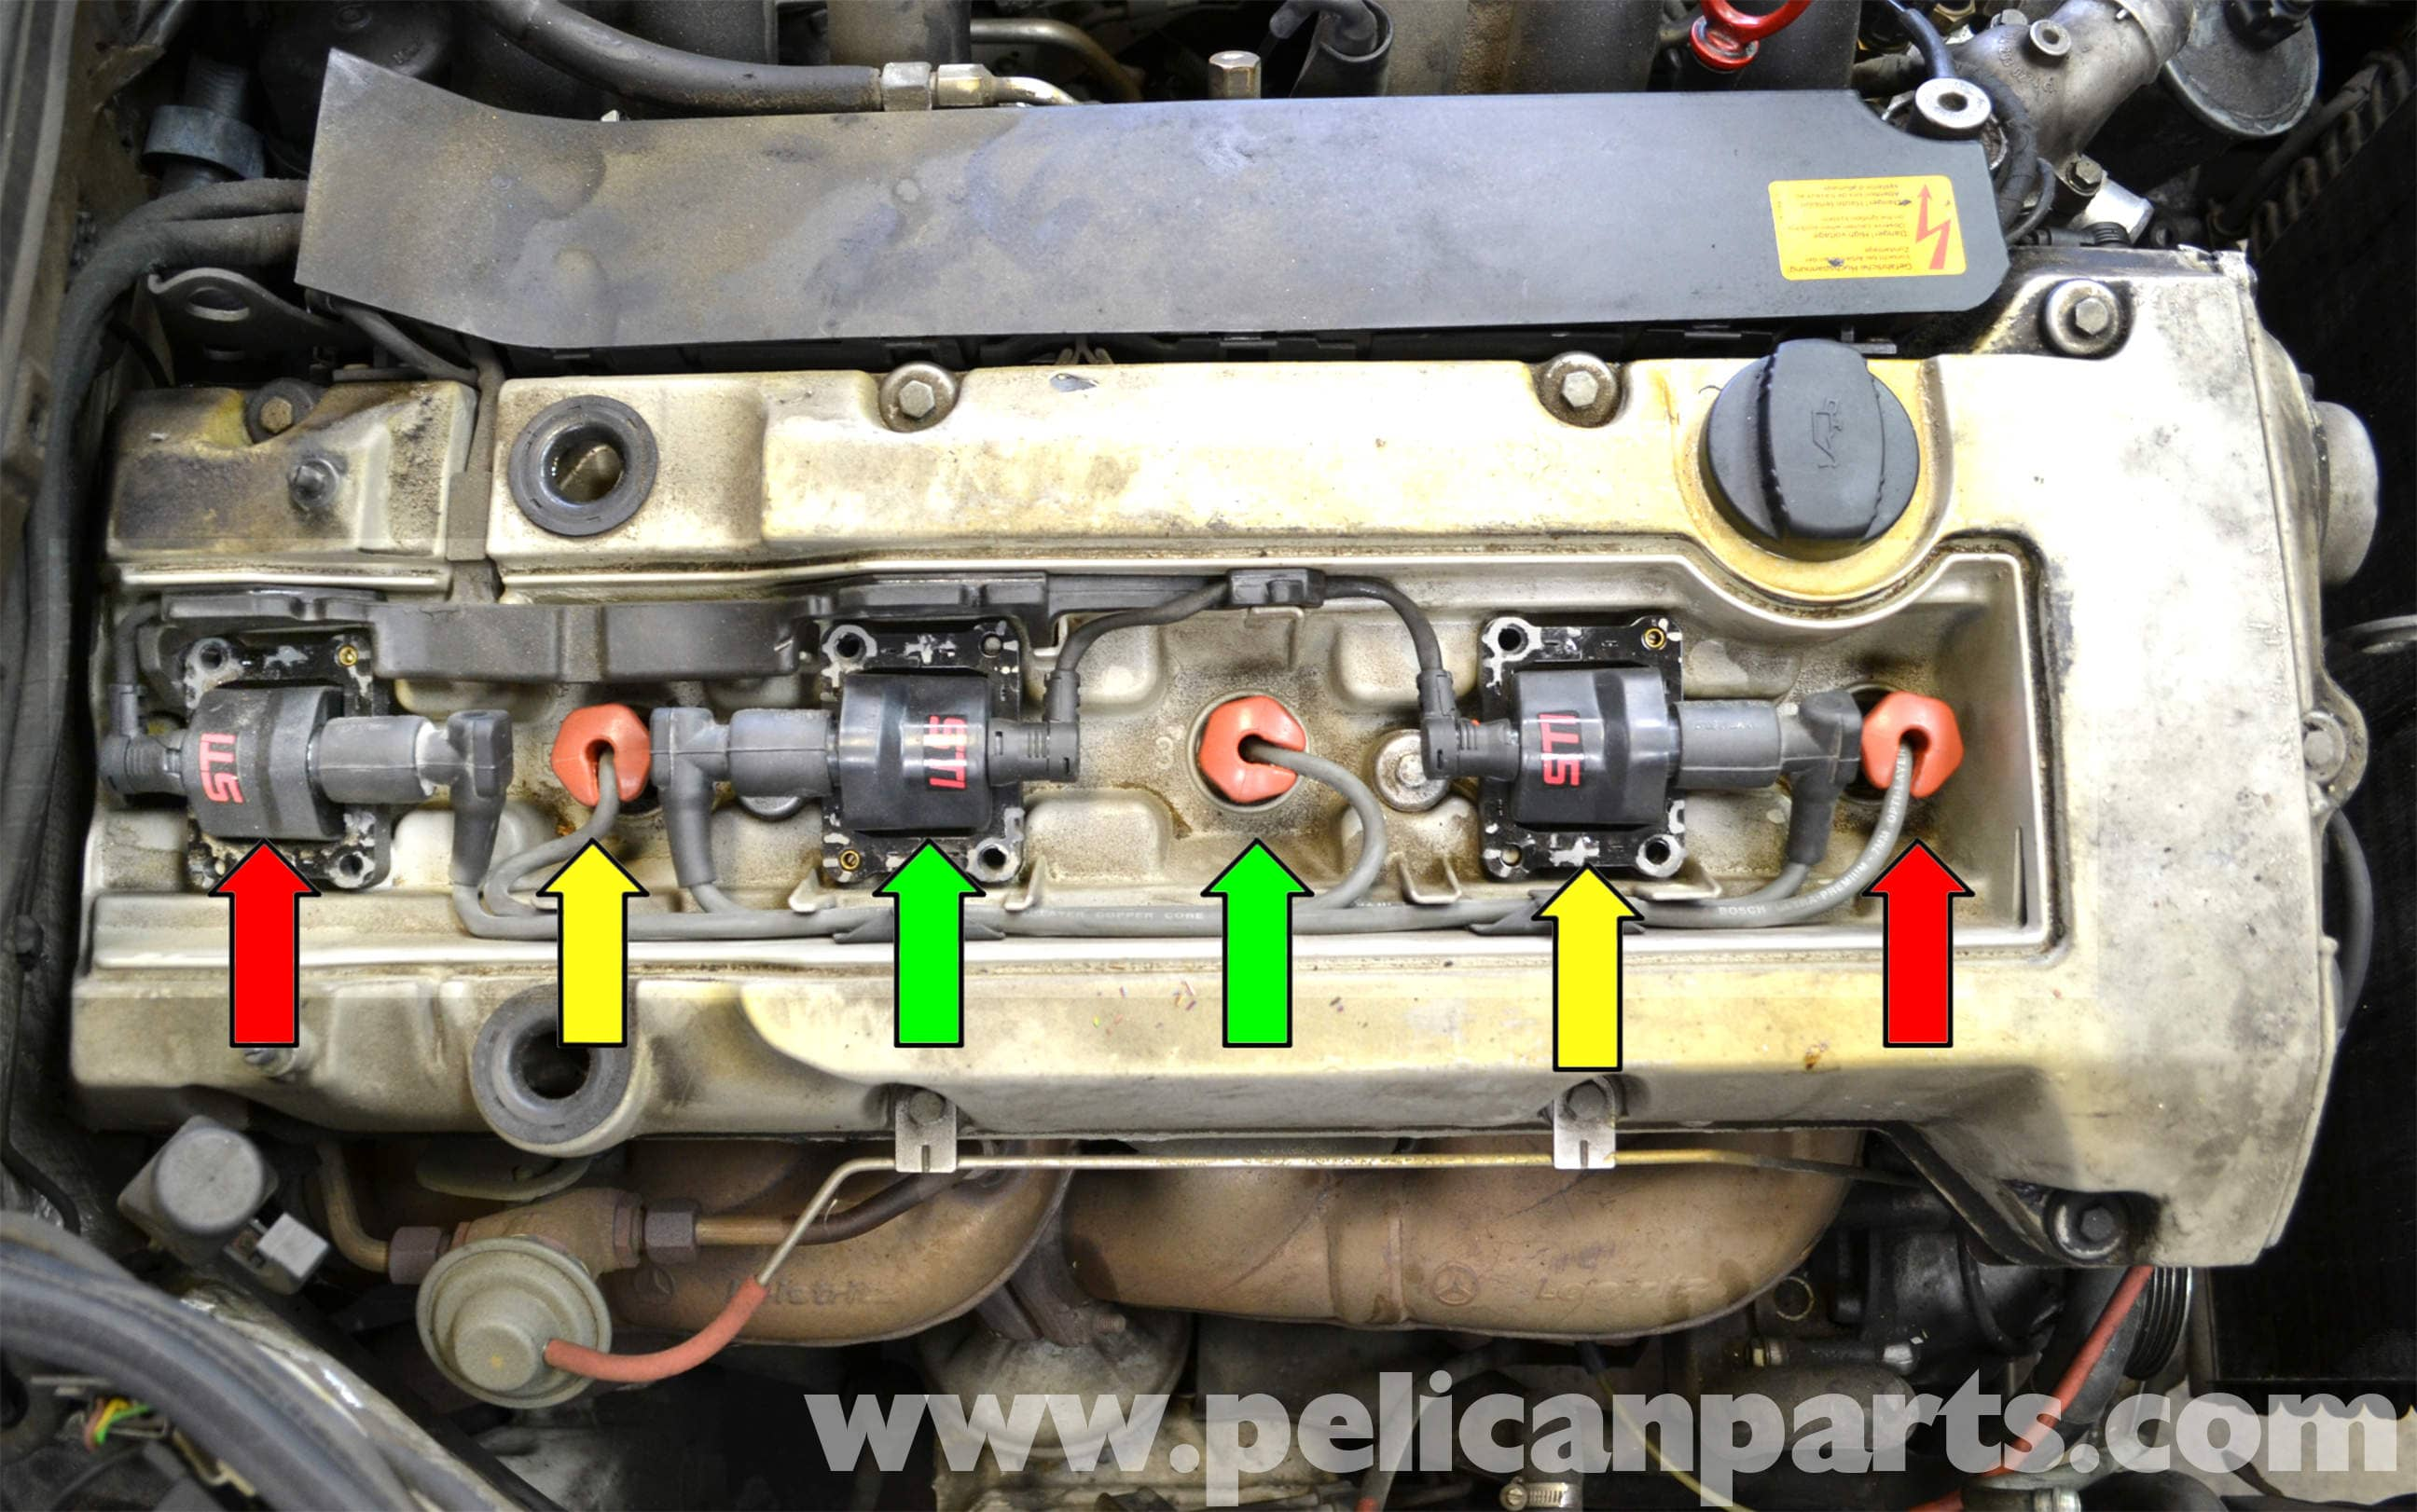 Mercedes benz w124 spark plug wires and coil replacement for Mercedes benz spark plug wires